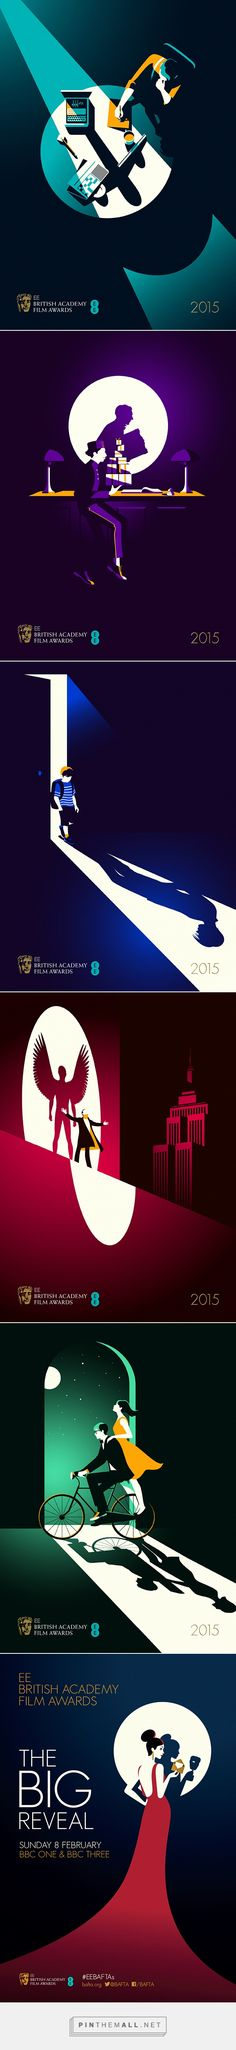 Malika Favre\'s terrific film noir-inspired posters for UK film\'s big night, the BAFTAs... - a grouped images picture